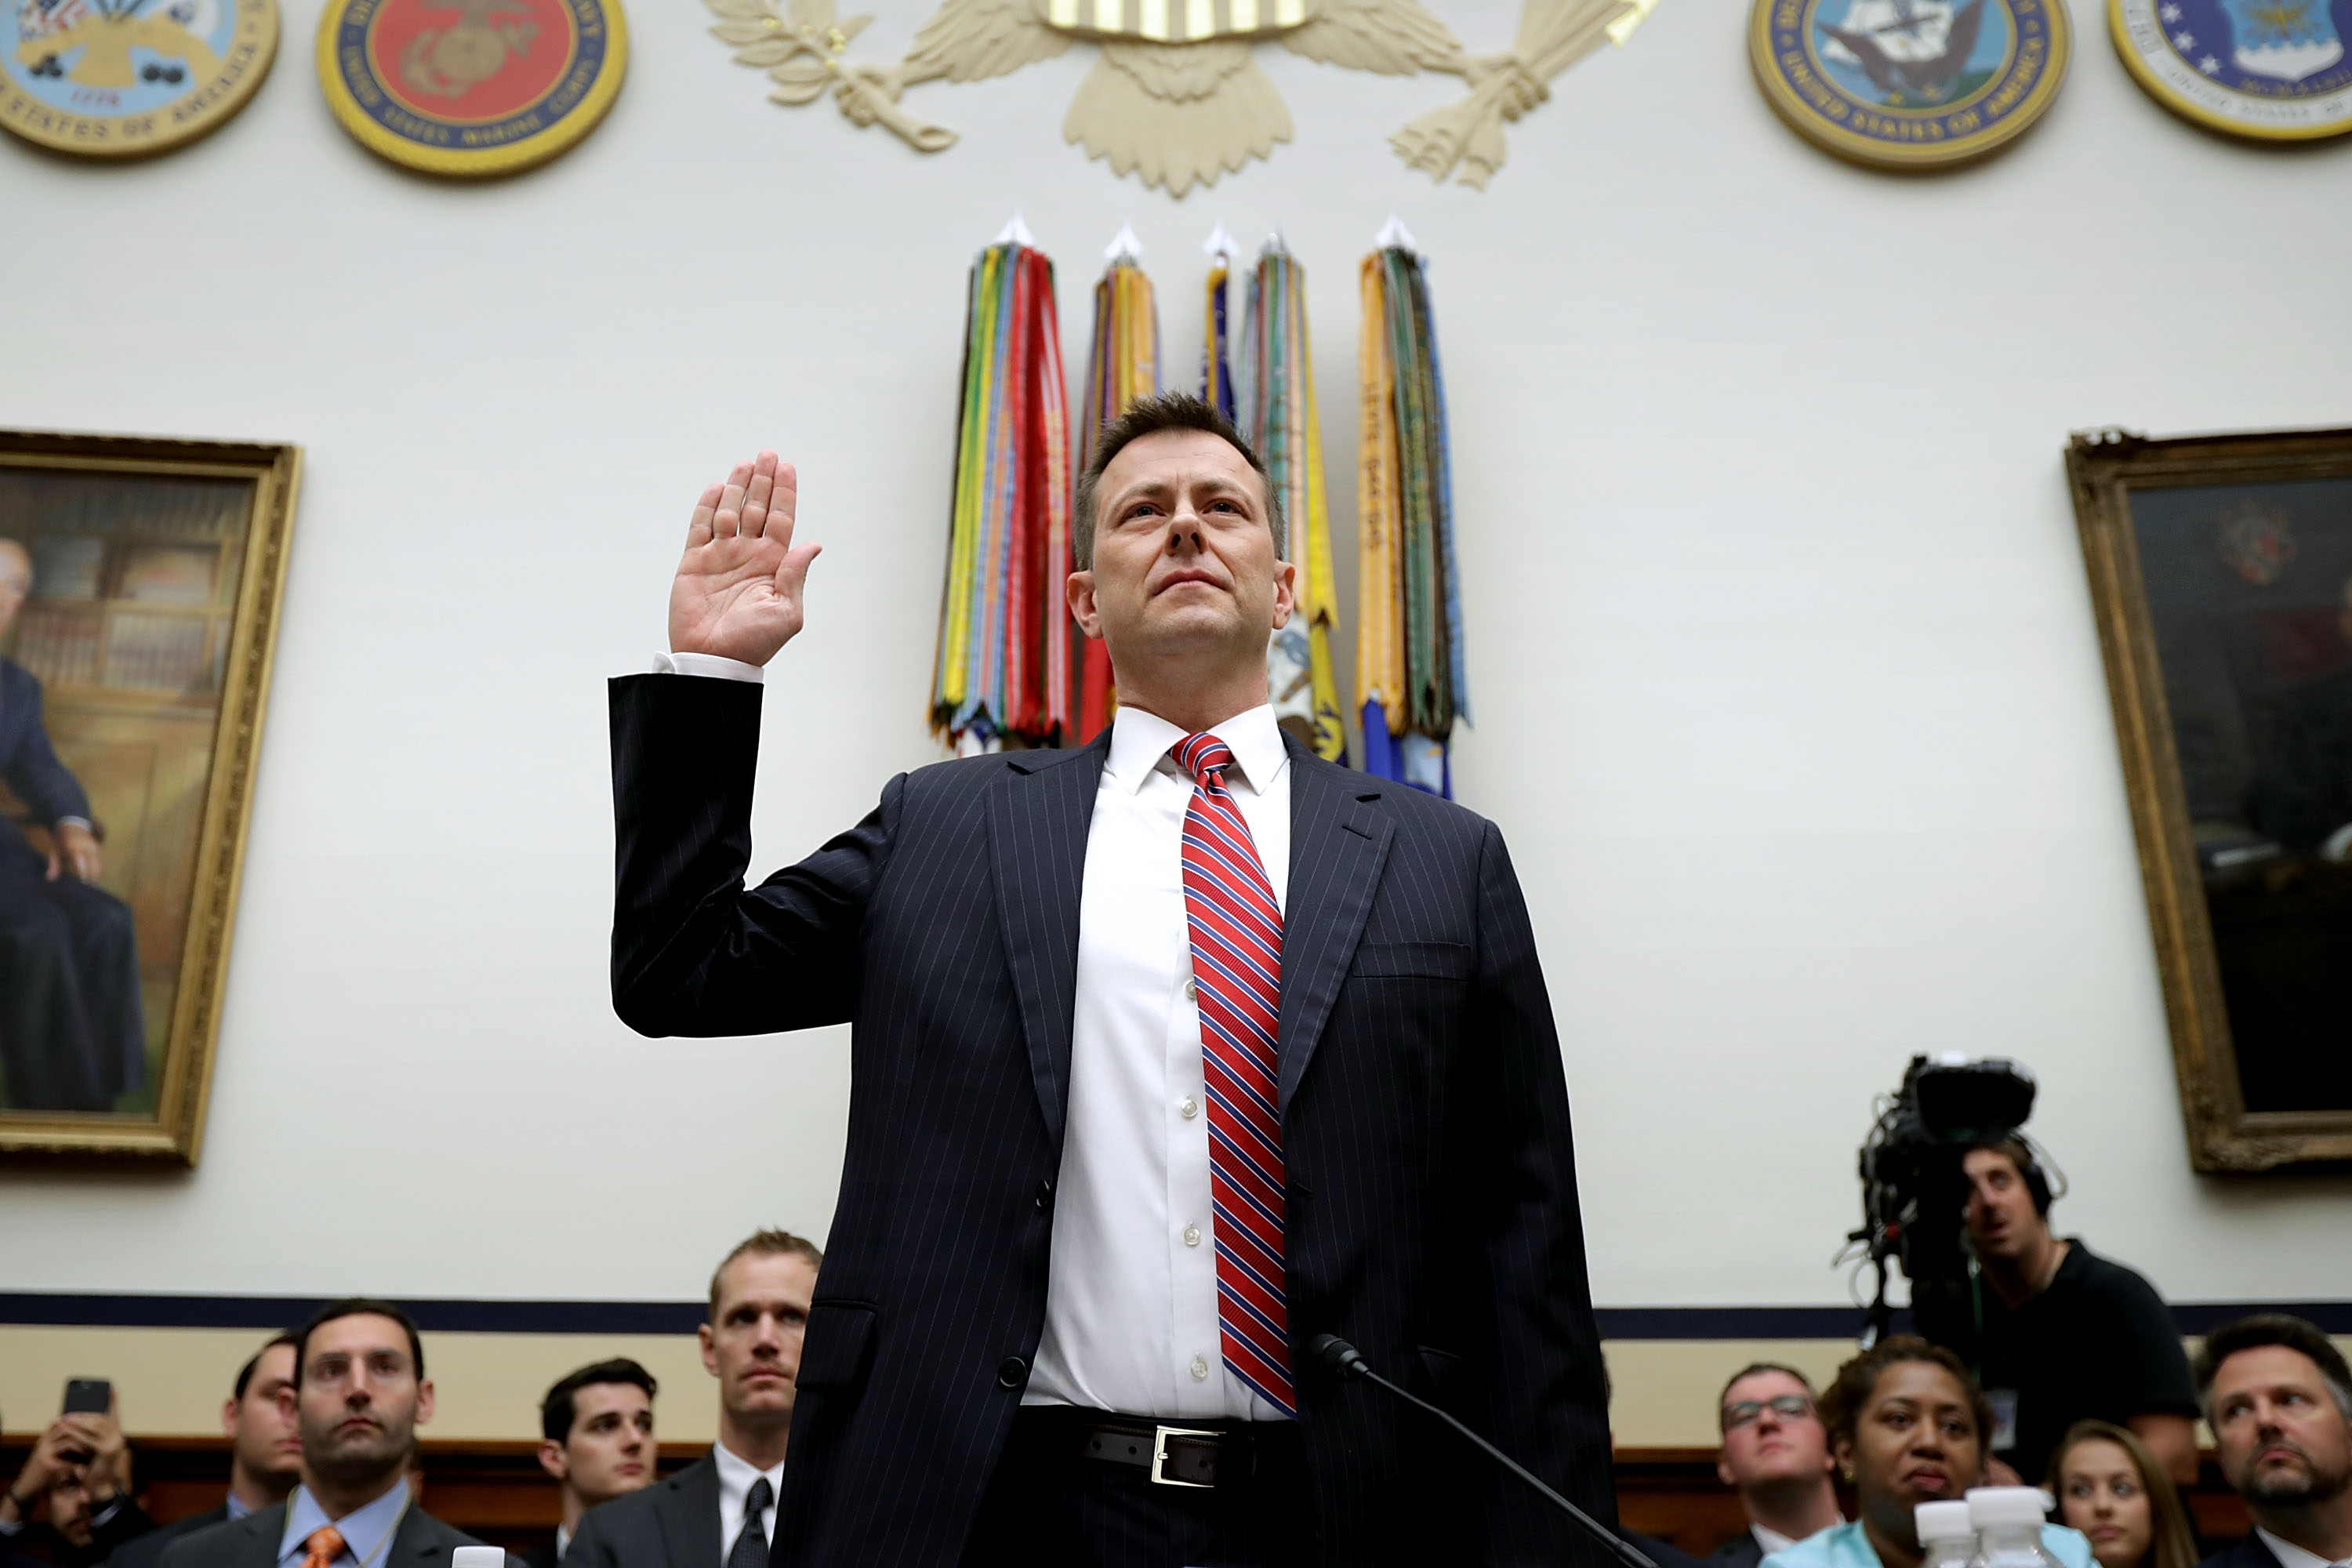 In this file photo, then-Deputy Assistant FBI Director Peter Strzok is sworn in before a joint committee hearing of the House Judiciary and Oversight and Government Reform committees in the Rayburn House Office Building on Capitol Hill July 12, 2018 in Washington, D.C. Strzok was fired from his post on Monday.